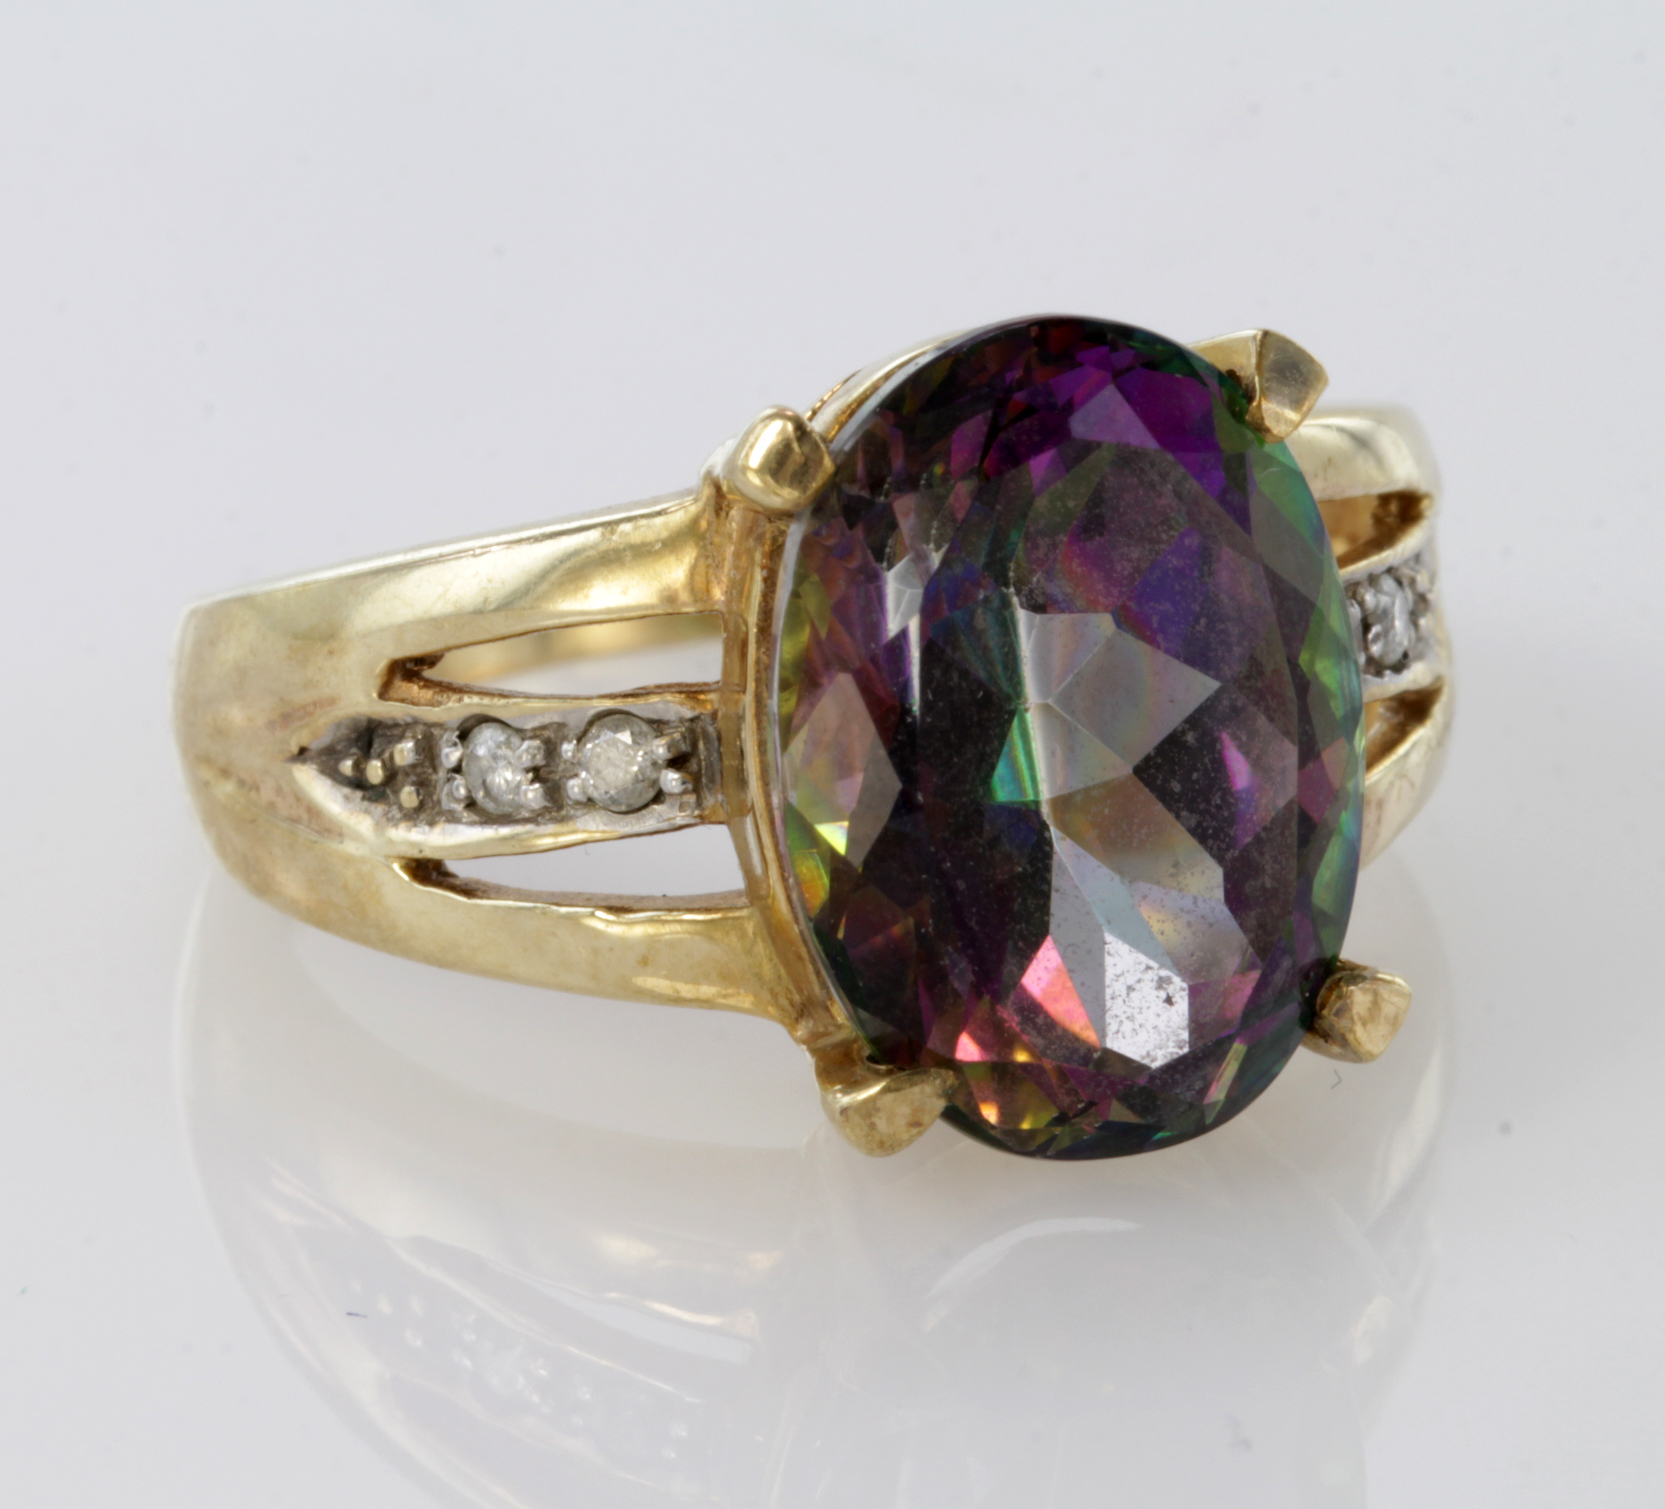 Lot 55 - 9ct Gold Mystic Topaz Ring with stone set shoulders size O weight 6.5g